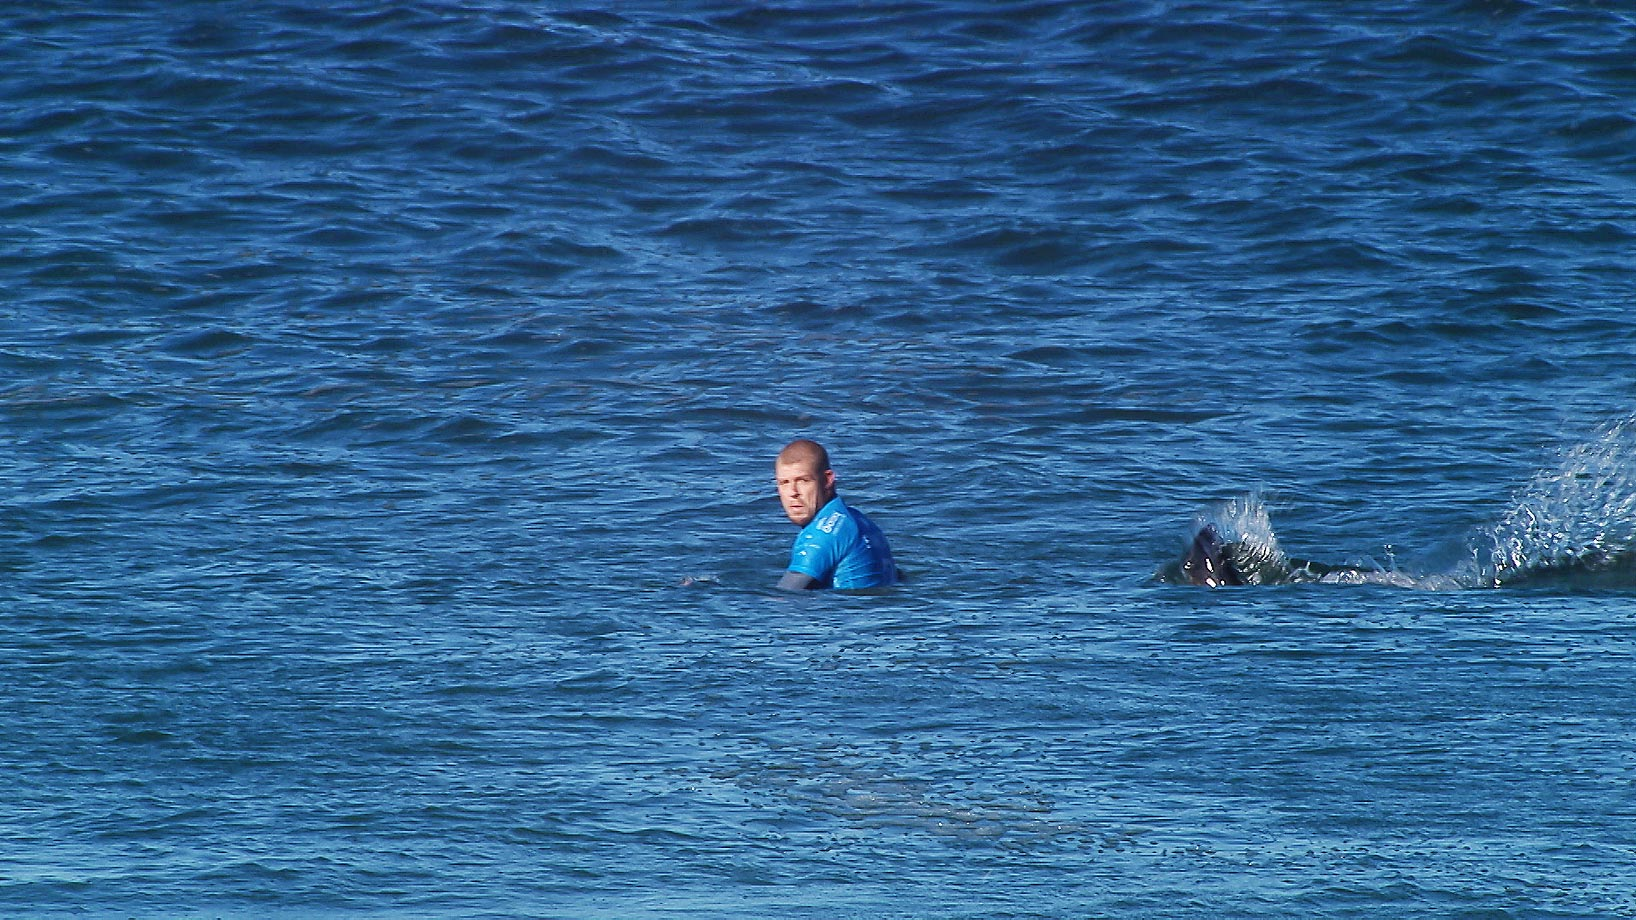 Mick Fanning of Australia was attacked by a Shark at the Jbay Open in Jeffreys Bay, South Africa.